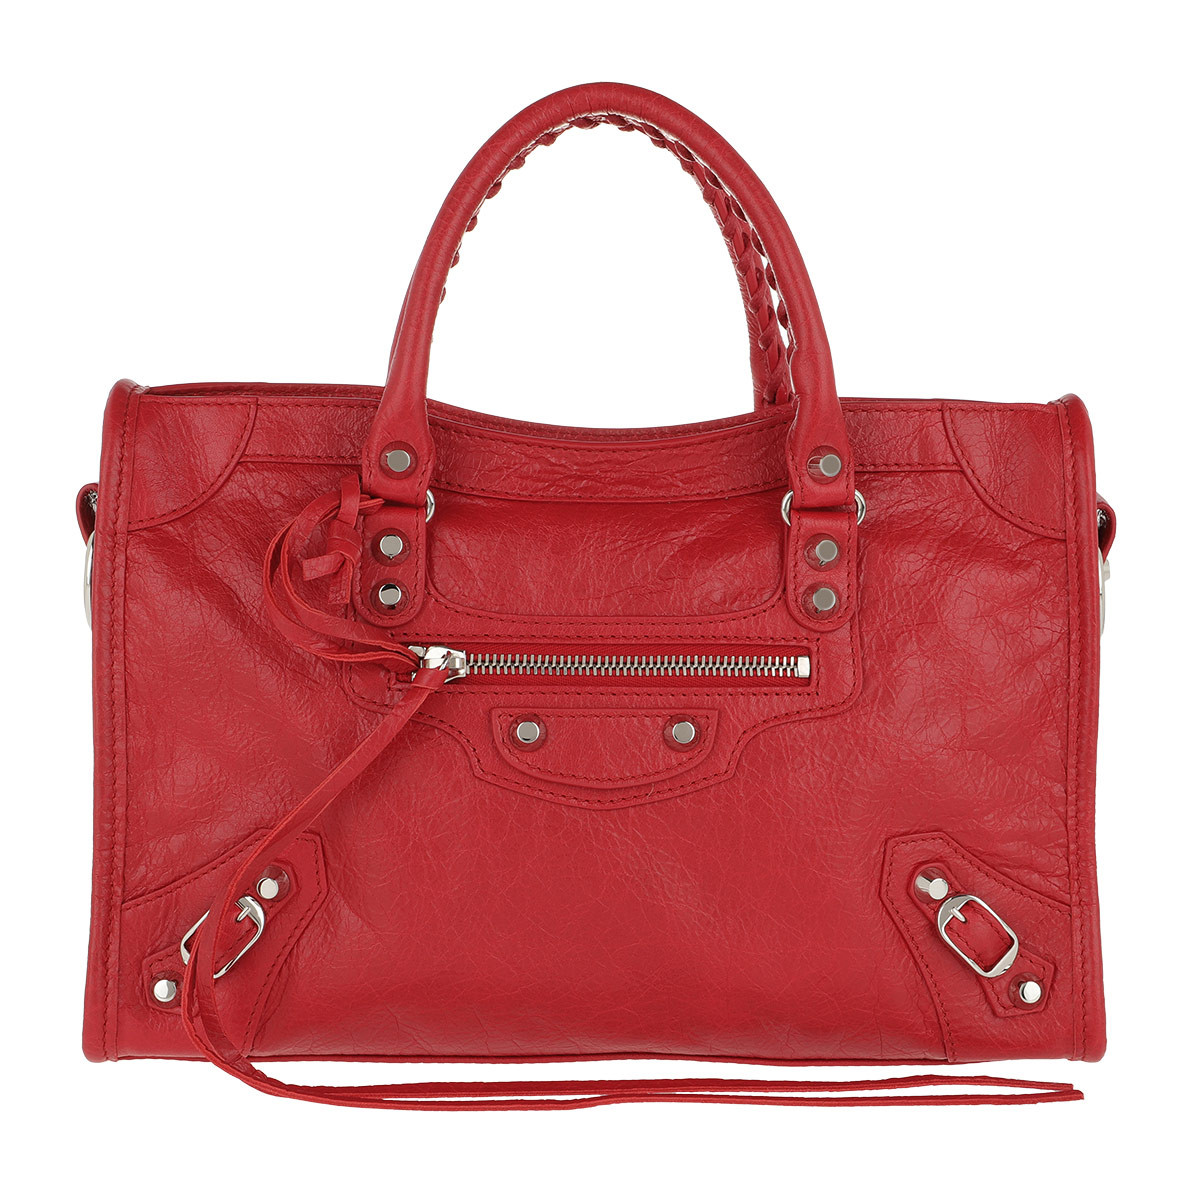 Balenciaga Tote - City Tote Tassel Studded Leather Red - in rot - für Damen